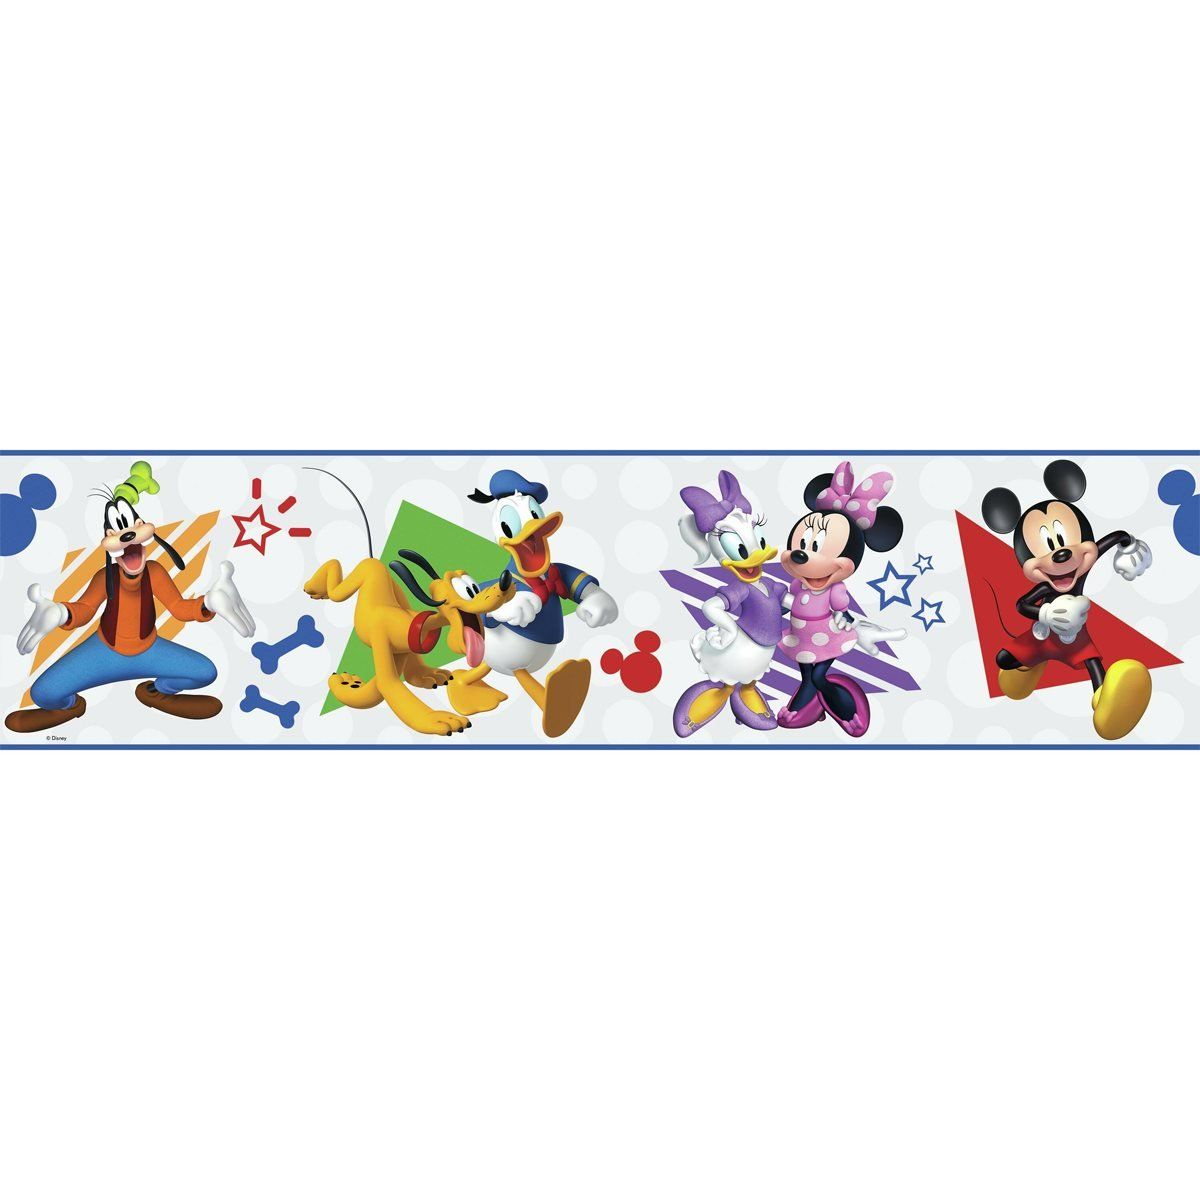 Mickey Mouse And Friends Peel And Stick Wallpaper Border Mickey Mouse And Friends Peel And Stick Wallpaper Mickey And Friends